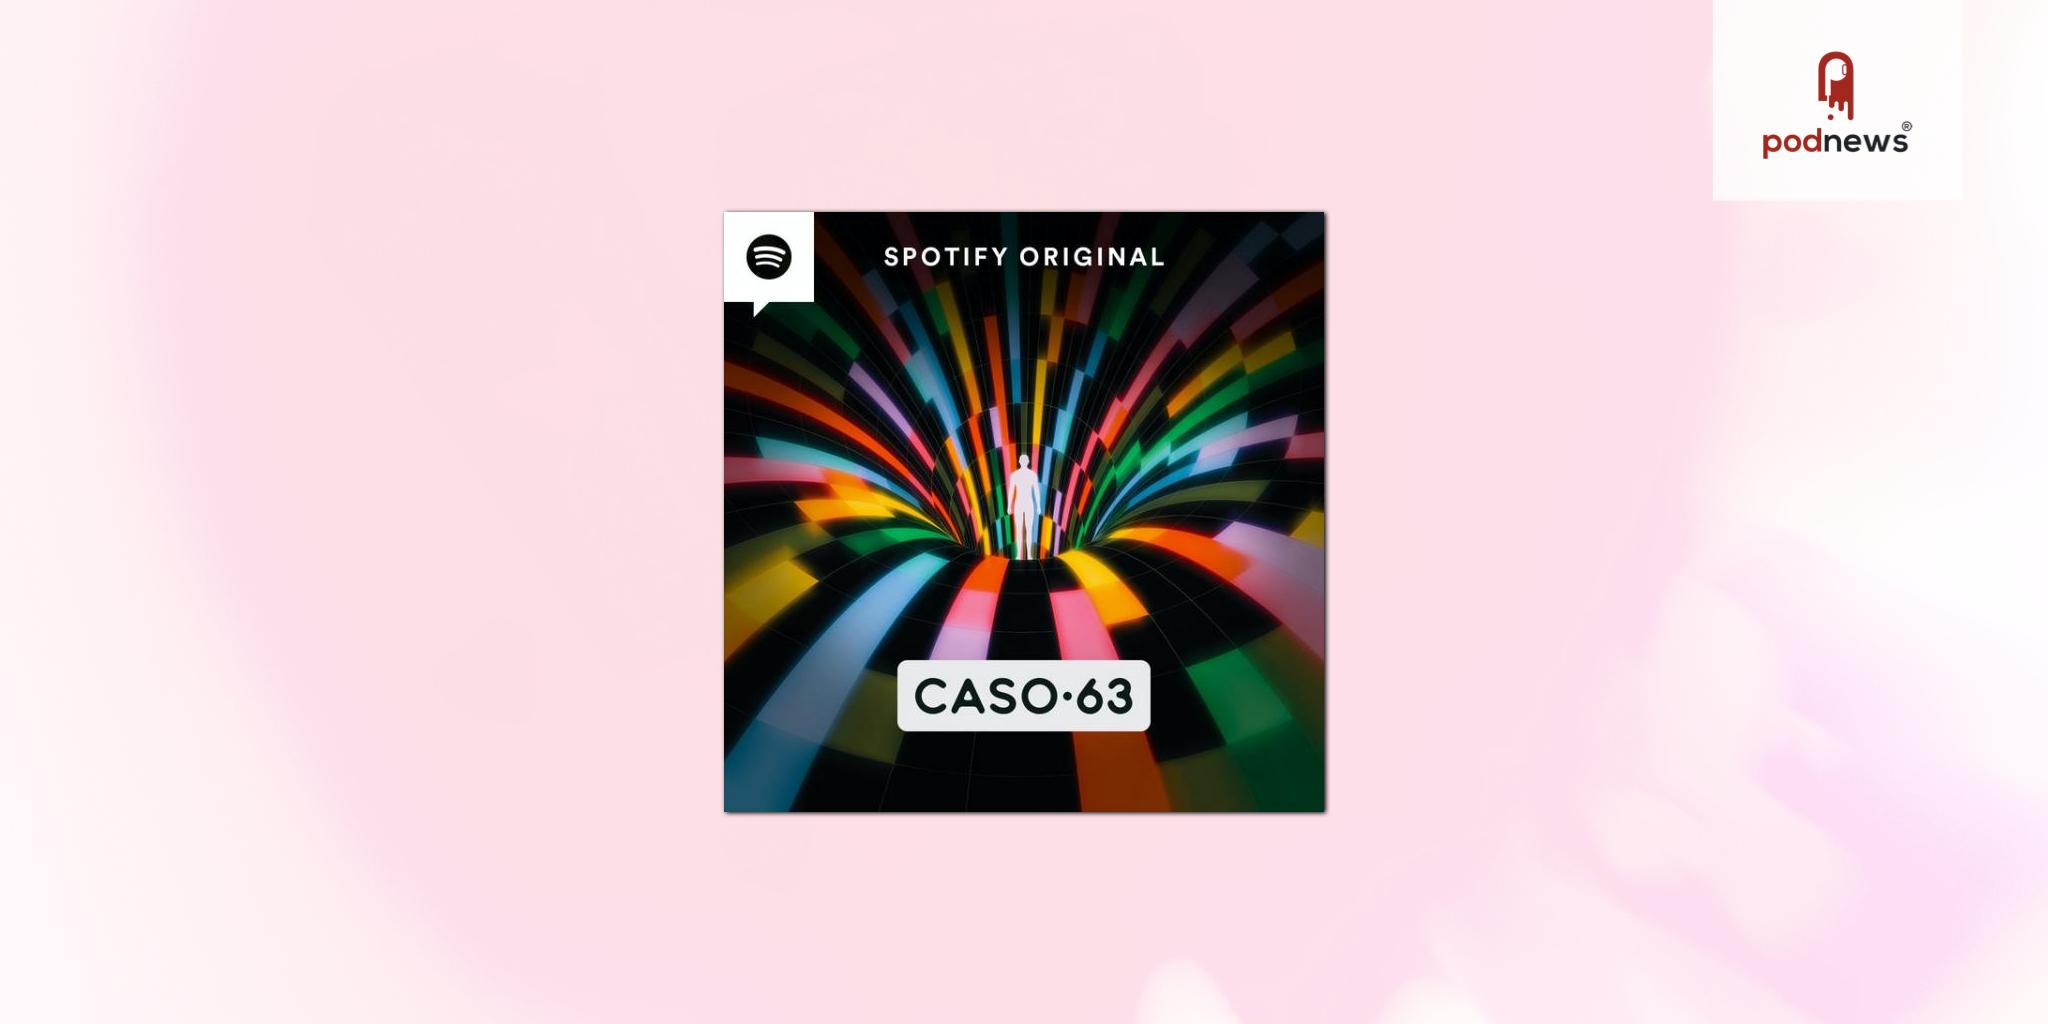 Spotify's Caso 63 returns for a second season and will be adapted to English